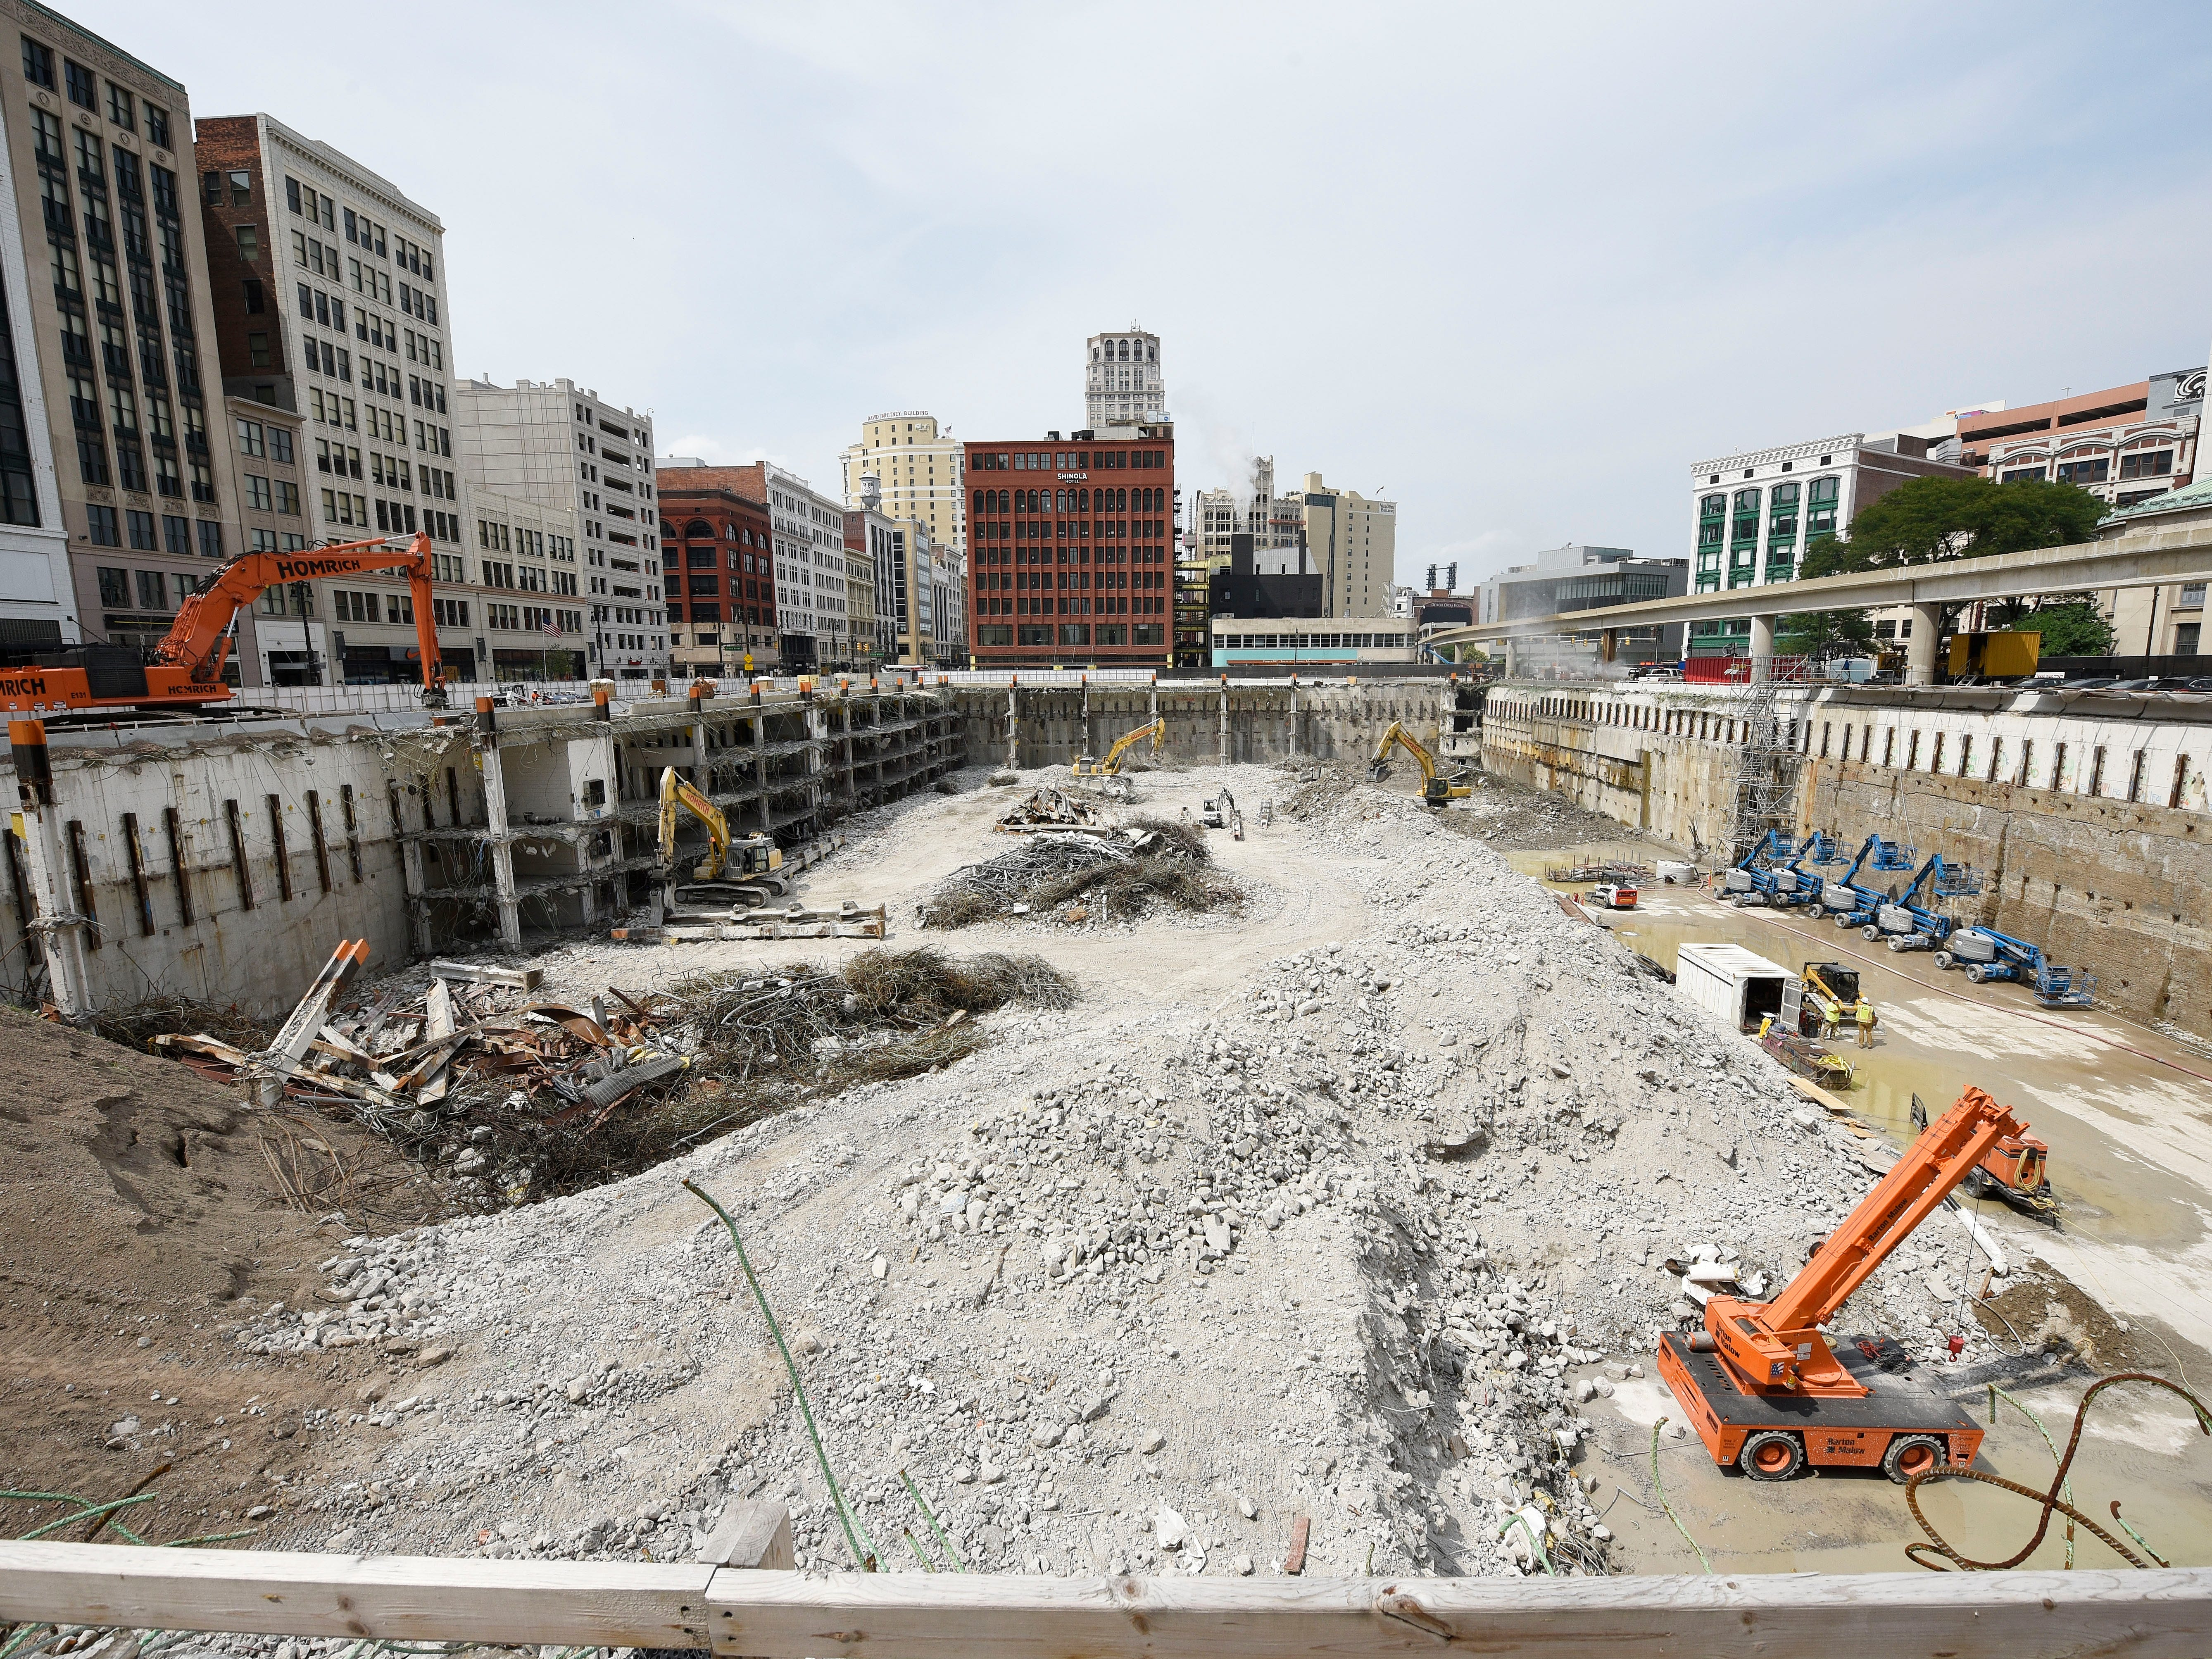 Work continues at the former Hudson's department store site on Woodward and Gratiot, where the tallest building in Detroit will be built.